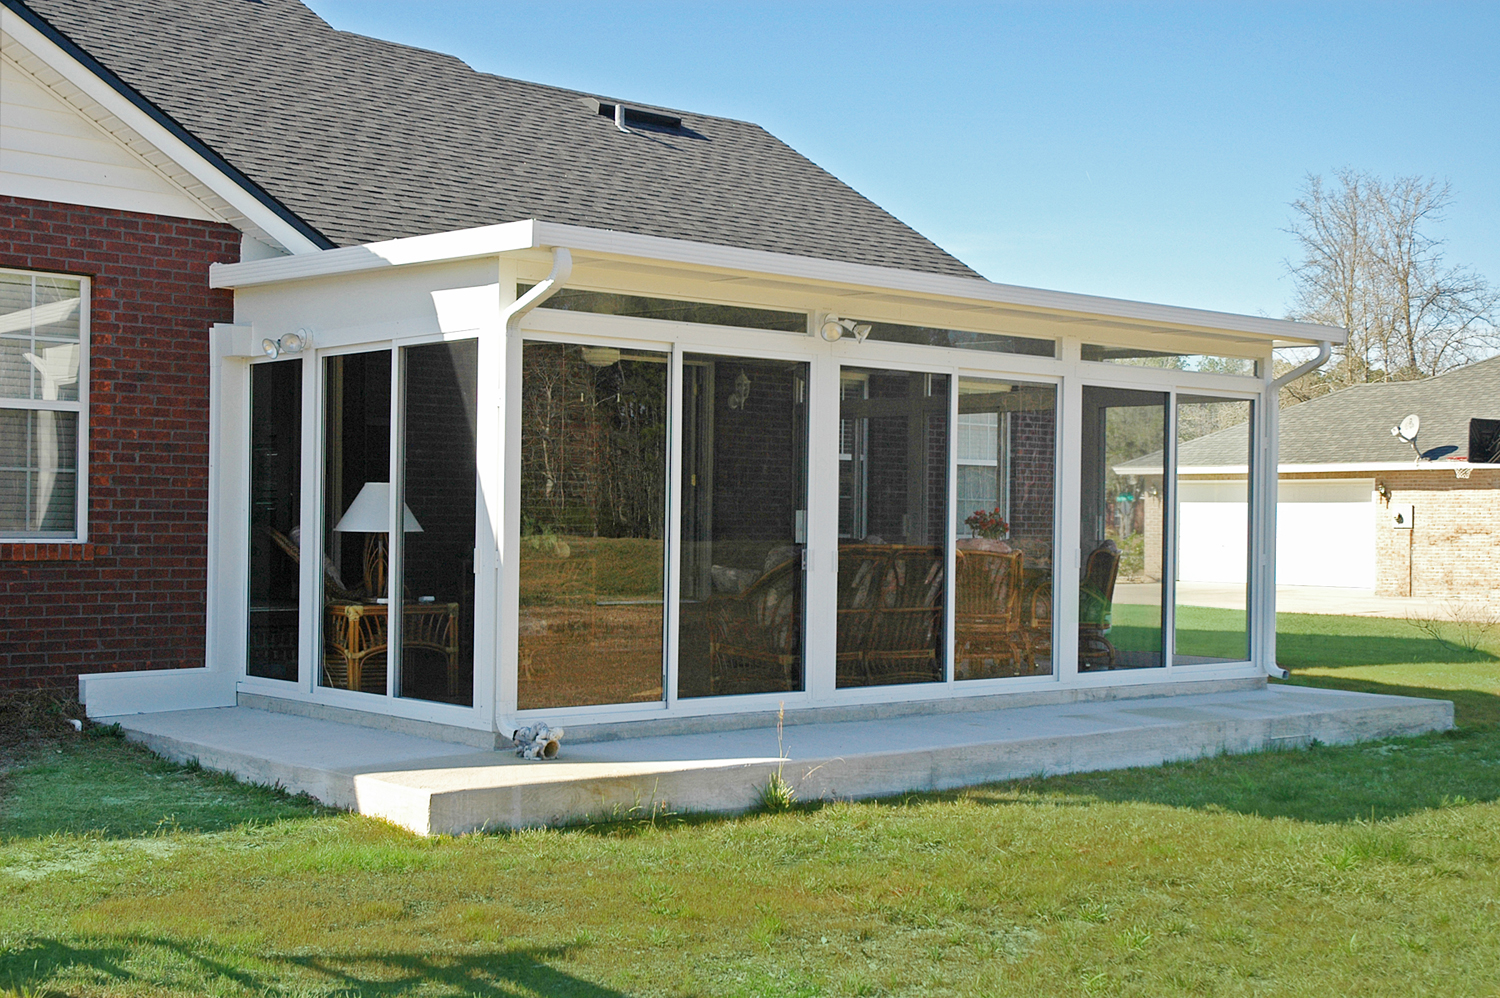 Betterliving patio sunrooms of pittsburgh studio rooms for Porch sunroom